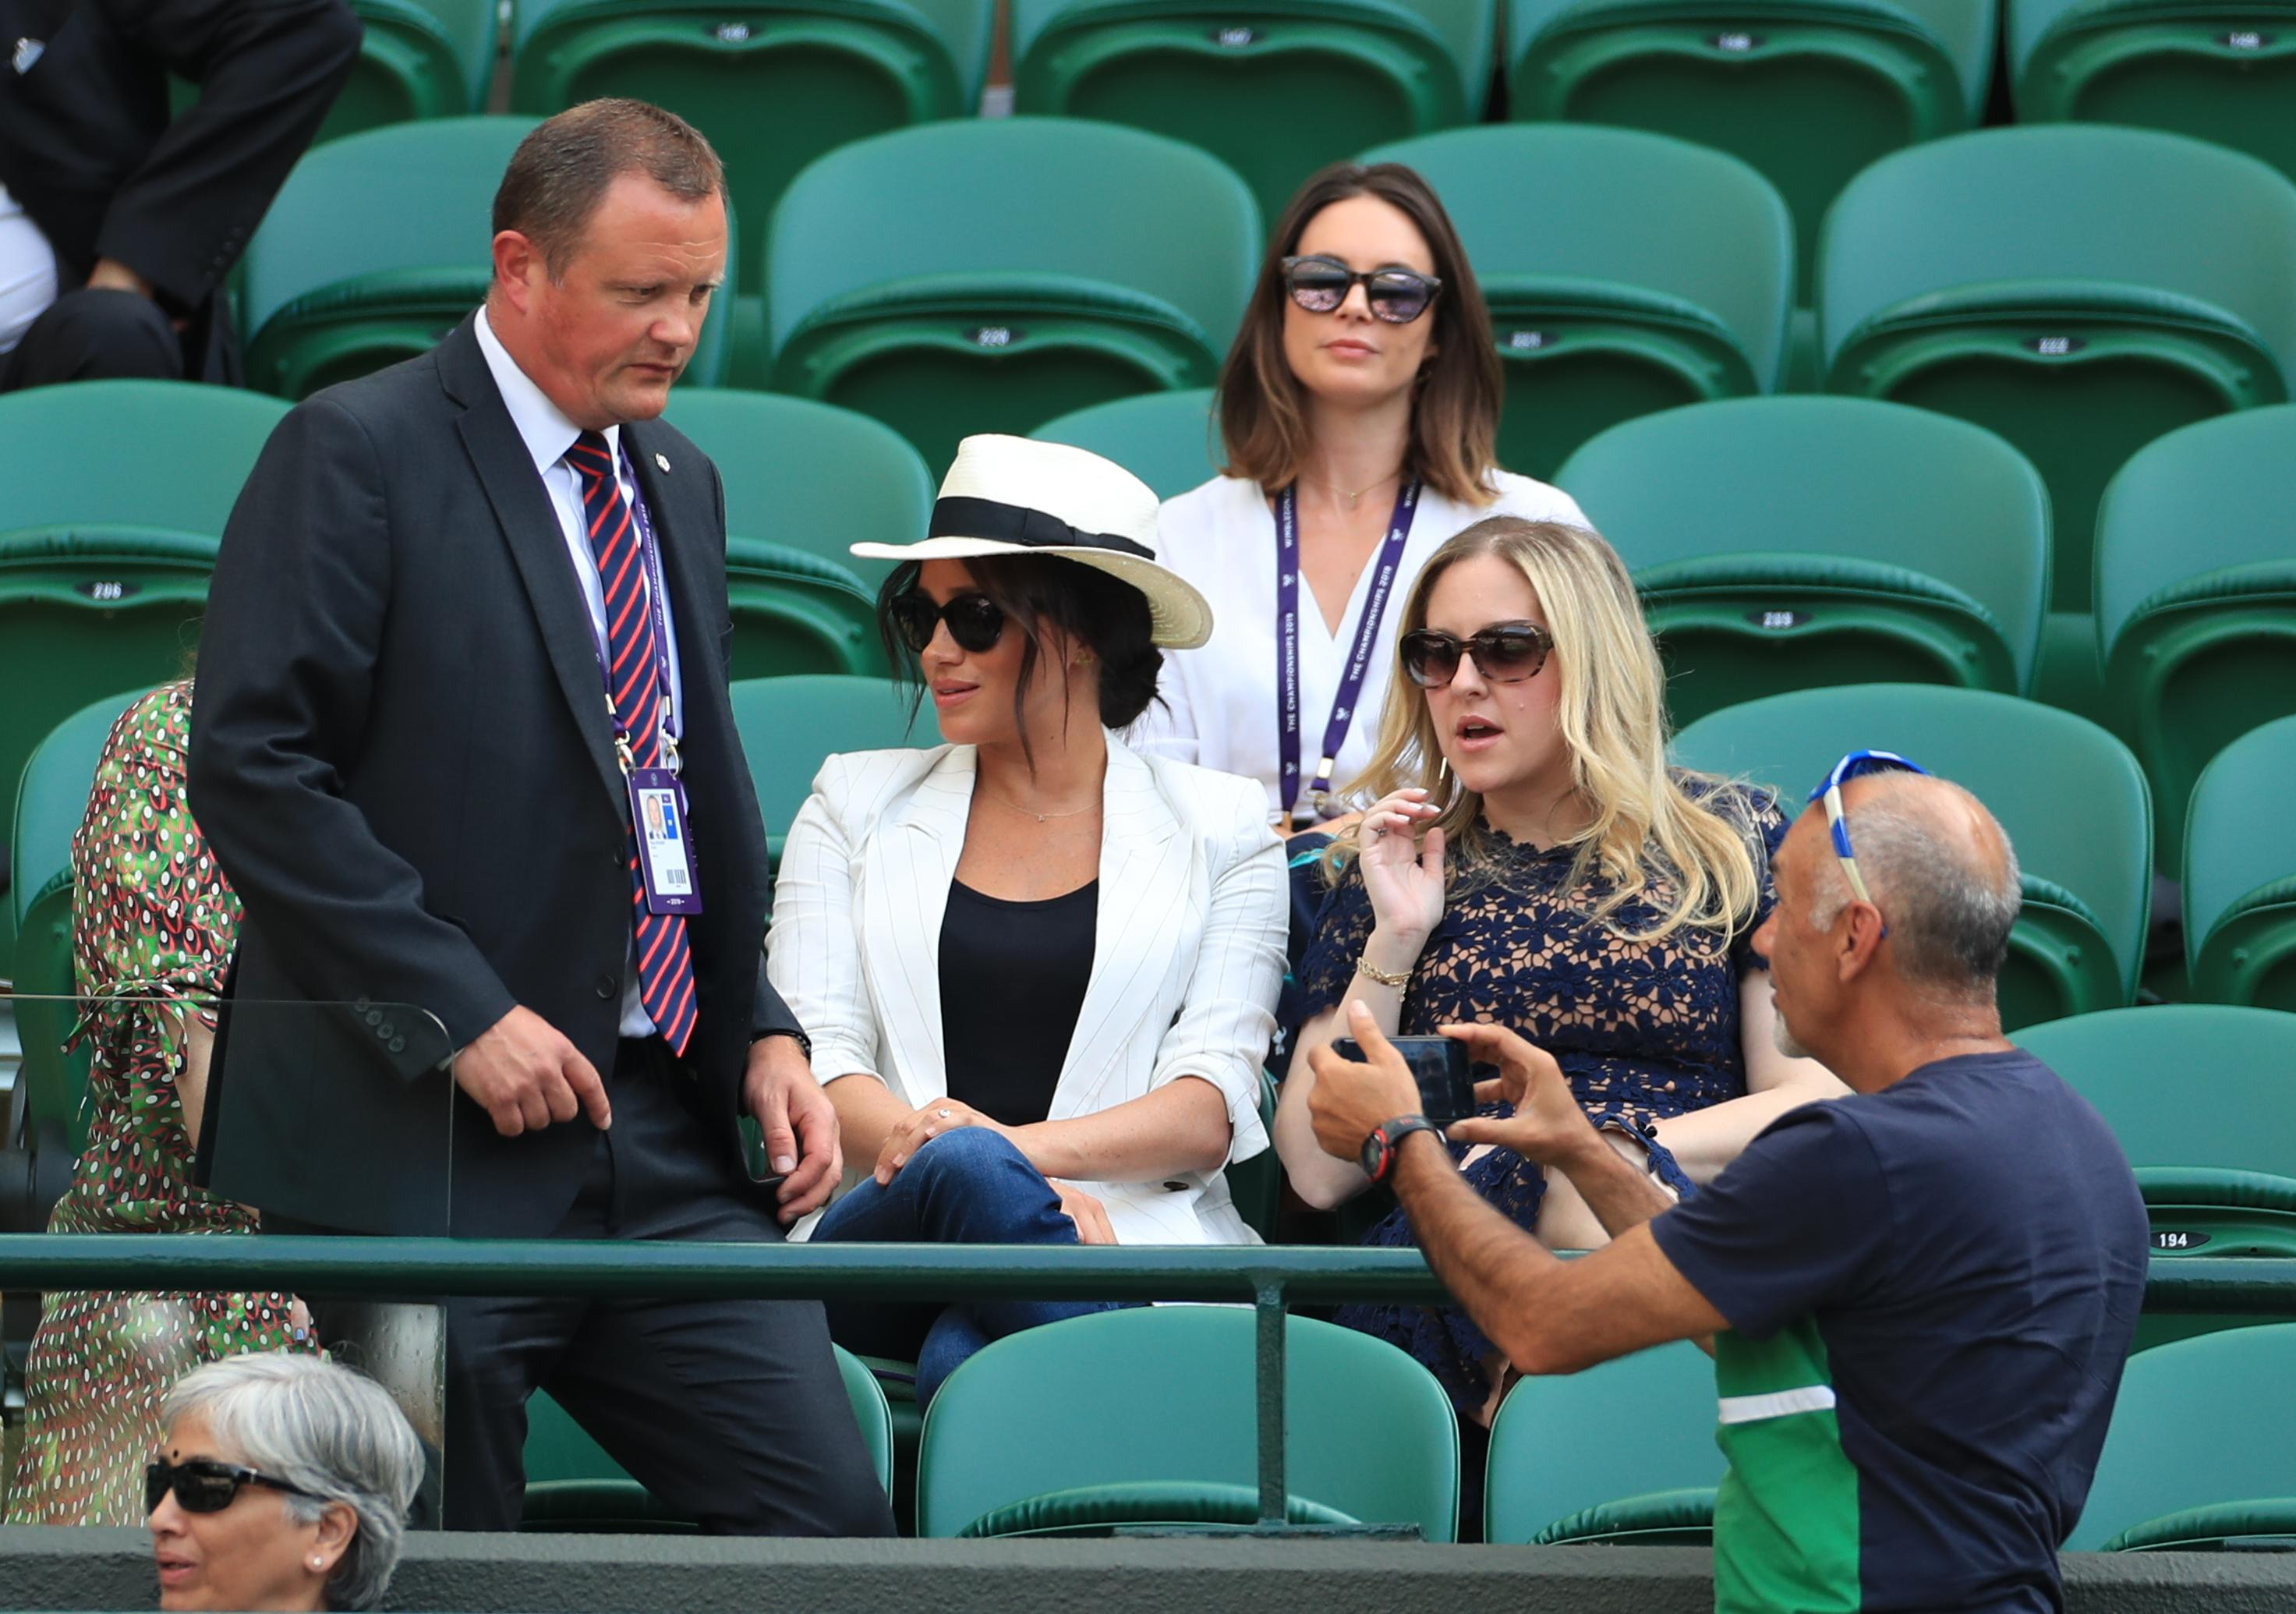 Previously unissued picture dated 4/7/2019 of a man believed to be a Royal bodyguard approaching a spectator who had taken a selfie as the Duchess of Sussex watches the Serena Williams match on court one during day four of the Wimbledon Championships at the All England Lawn Tennis and Croquet Club, Wimbledon. (Photo by Mike Egerton/PA Images via Getty Images)